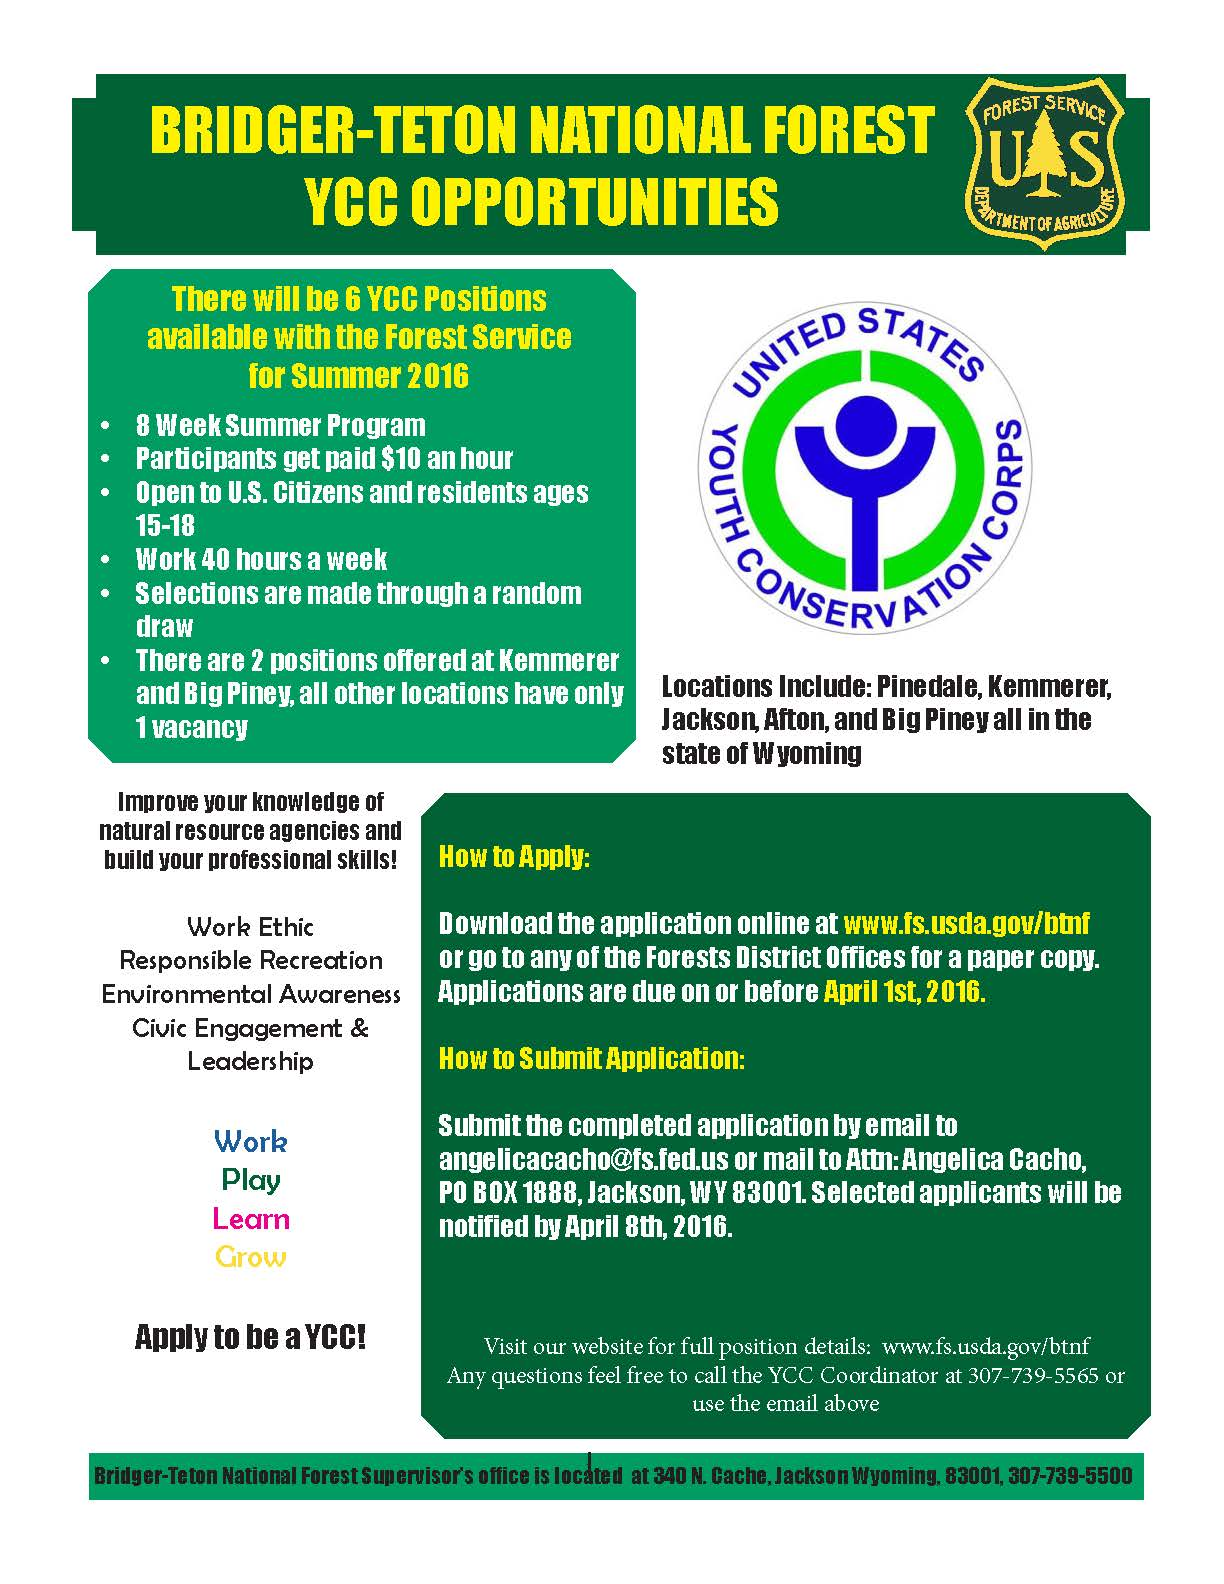 YCC Information Flyer for Summer 2016